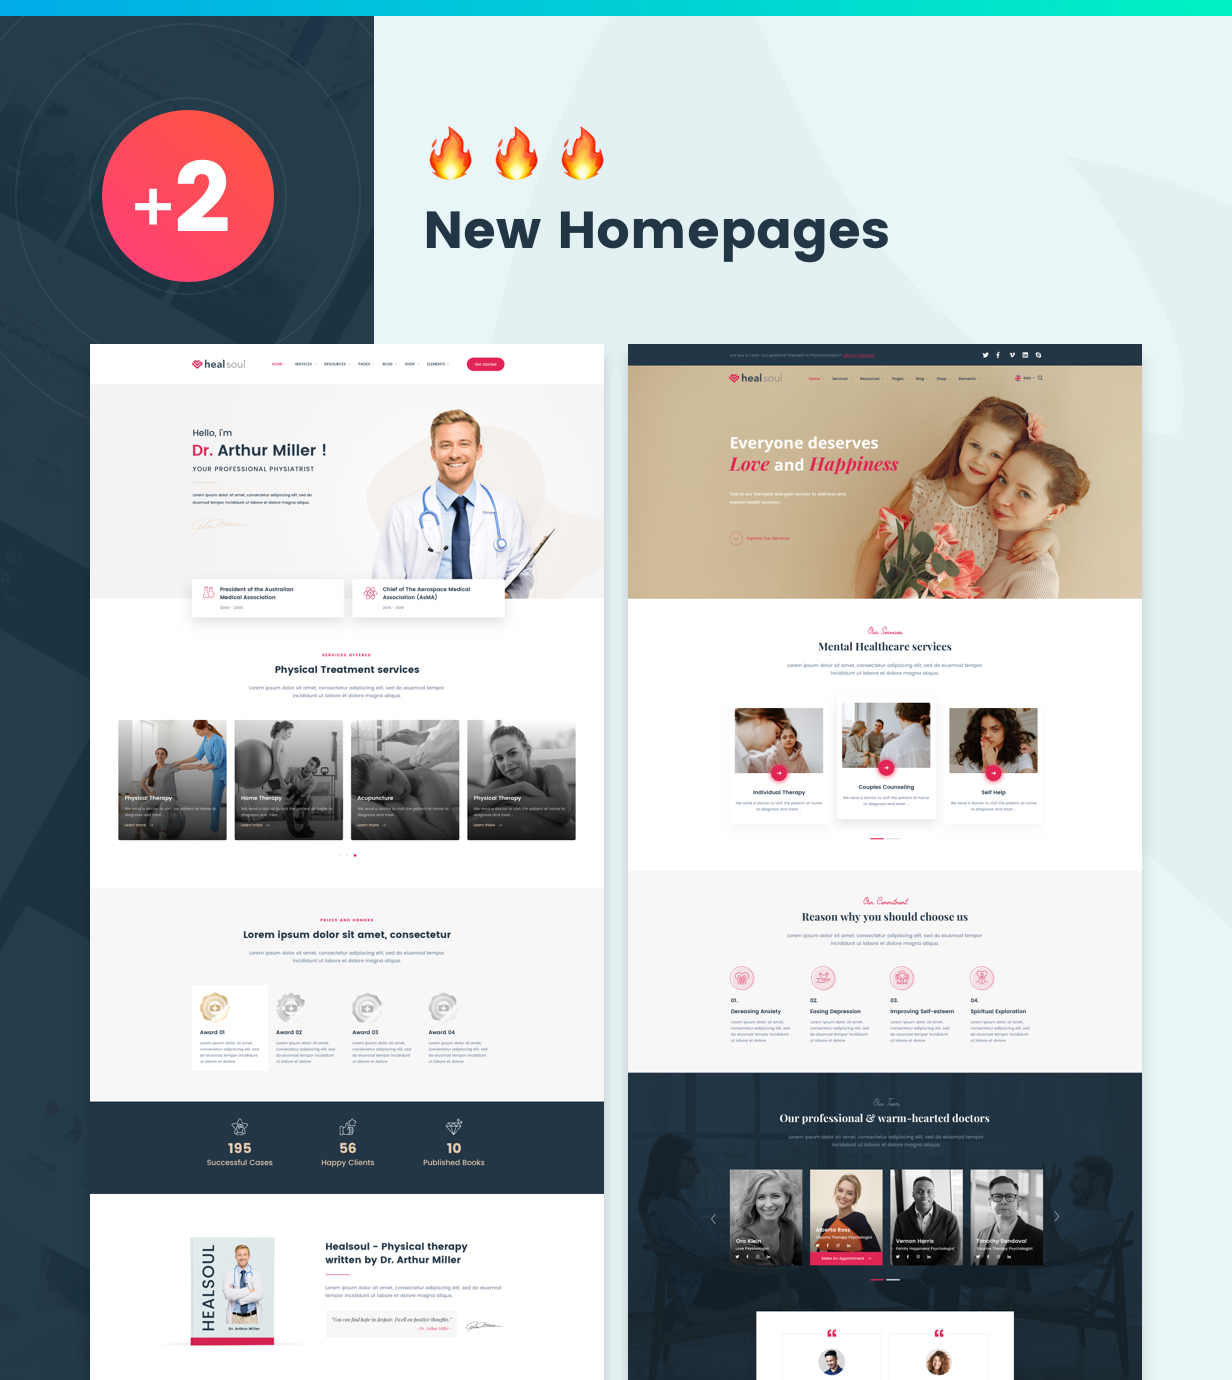 Healsoul - Medical Care, Home Healthcare Service WP Theme - 5